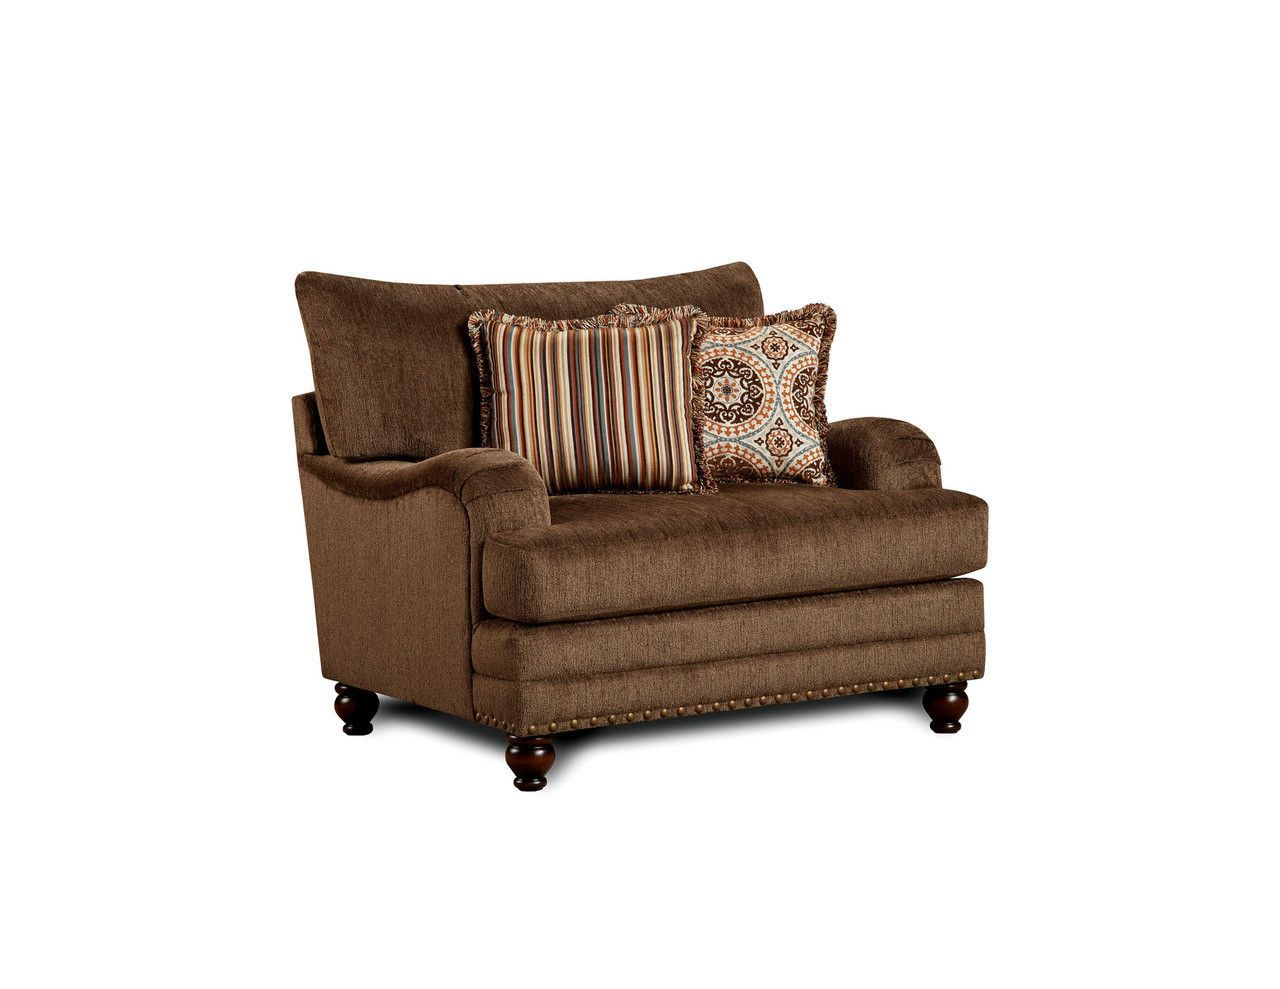 Sofa Chair Sale for $597